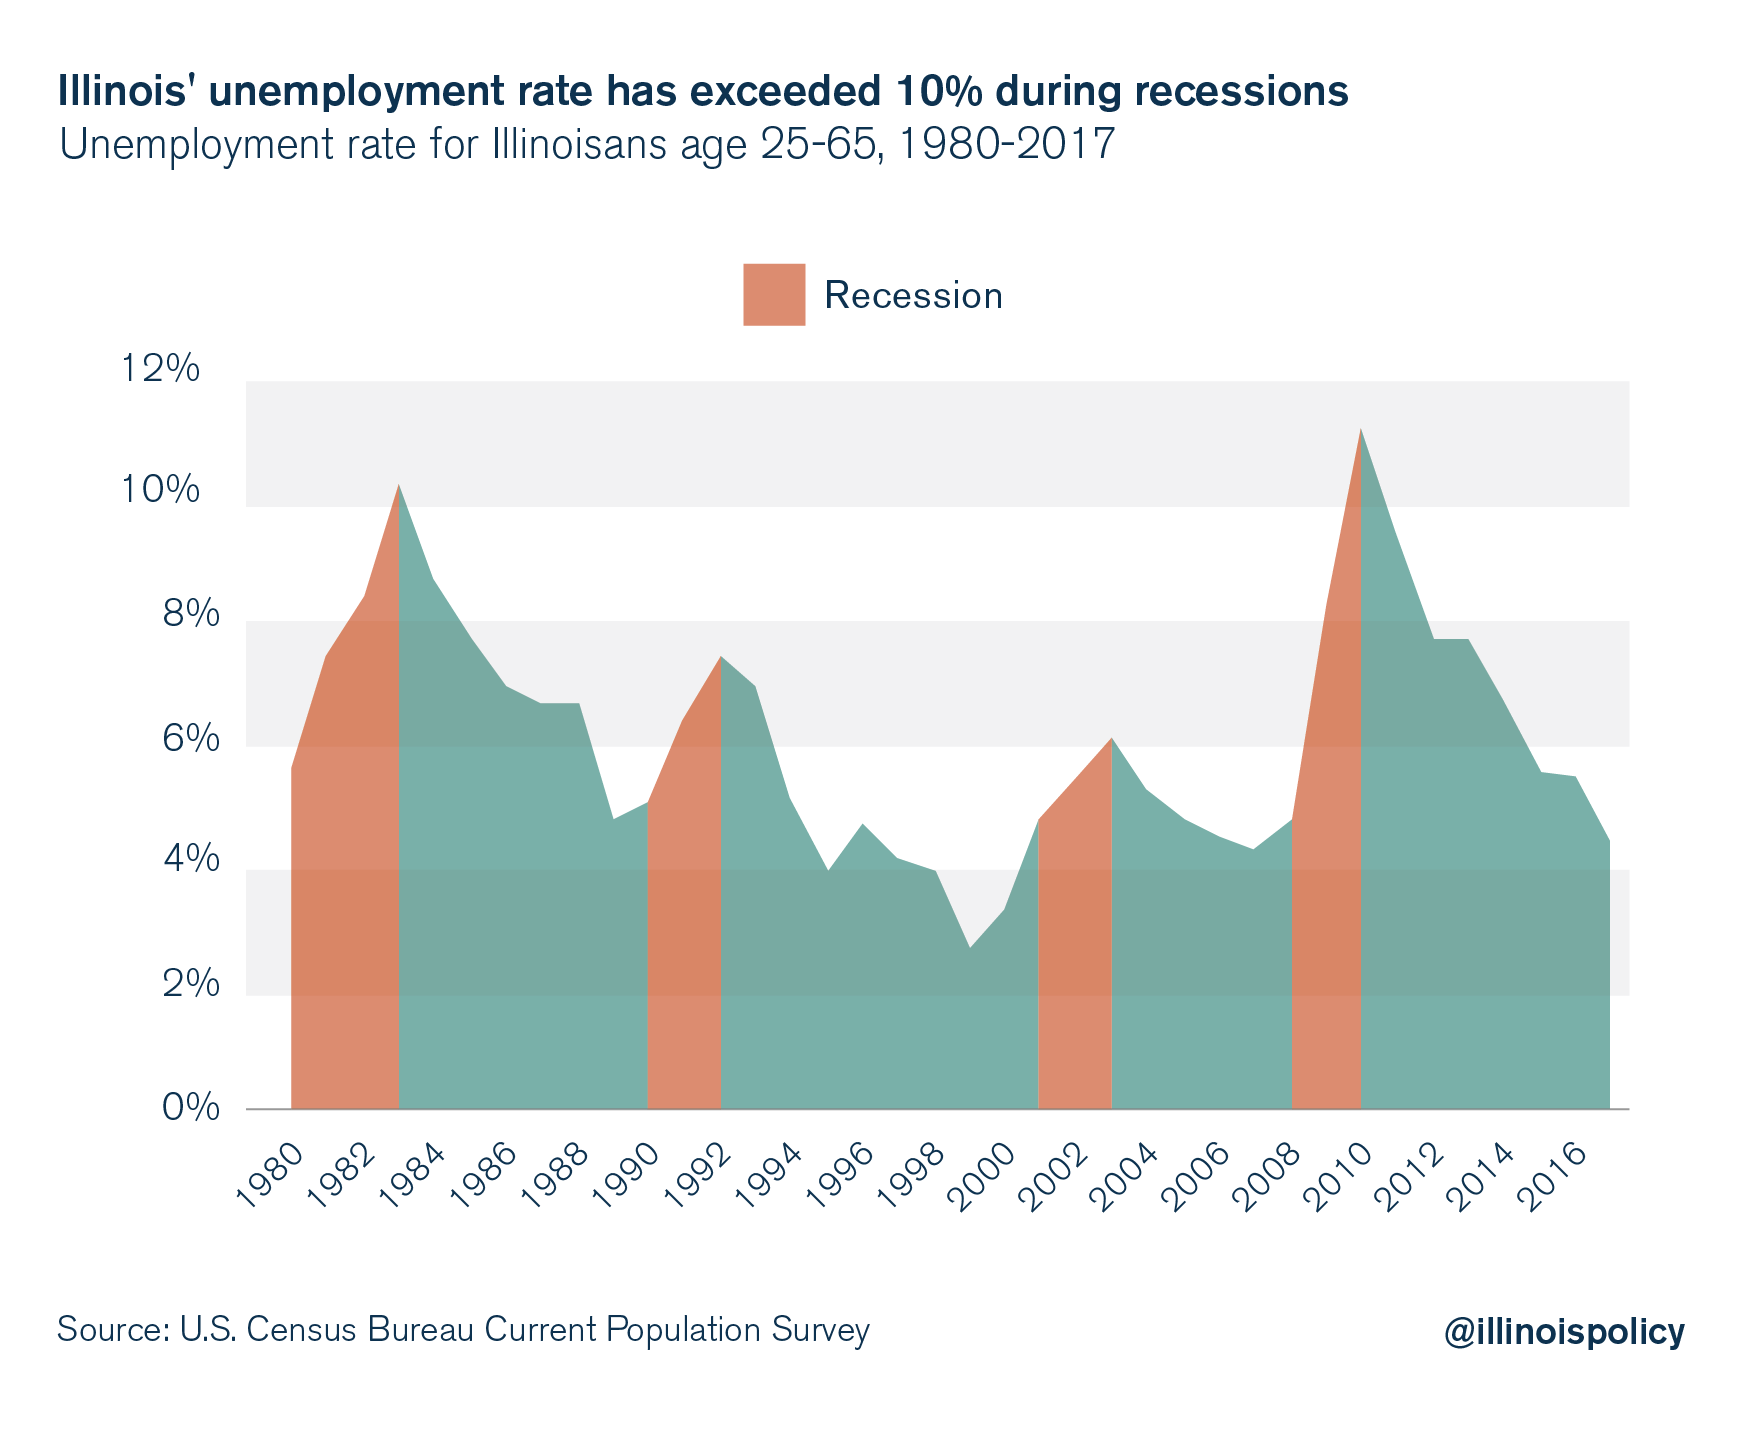 Illinois' unemployment rate has exceeded 10% during recessions